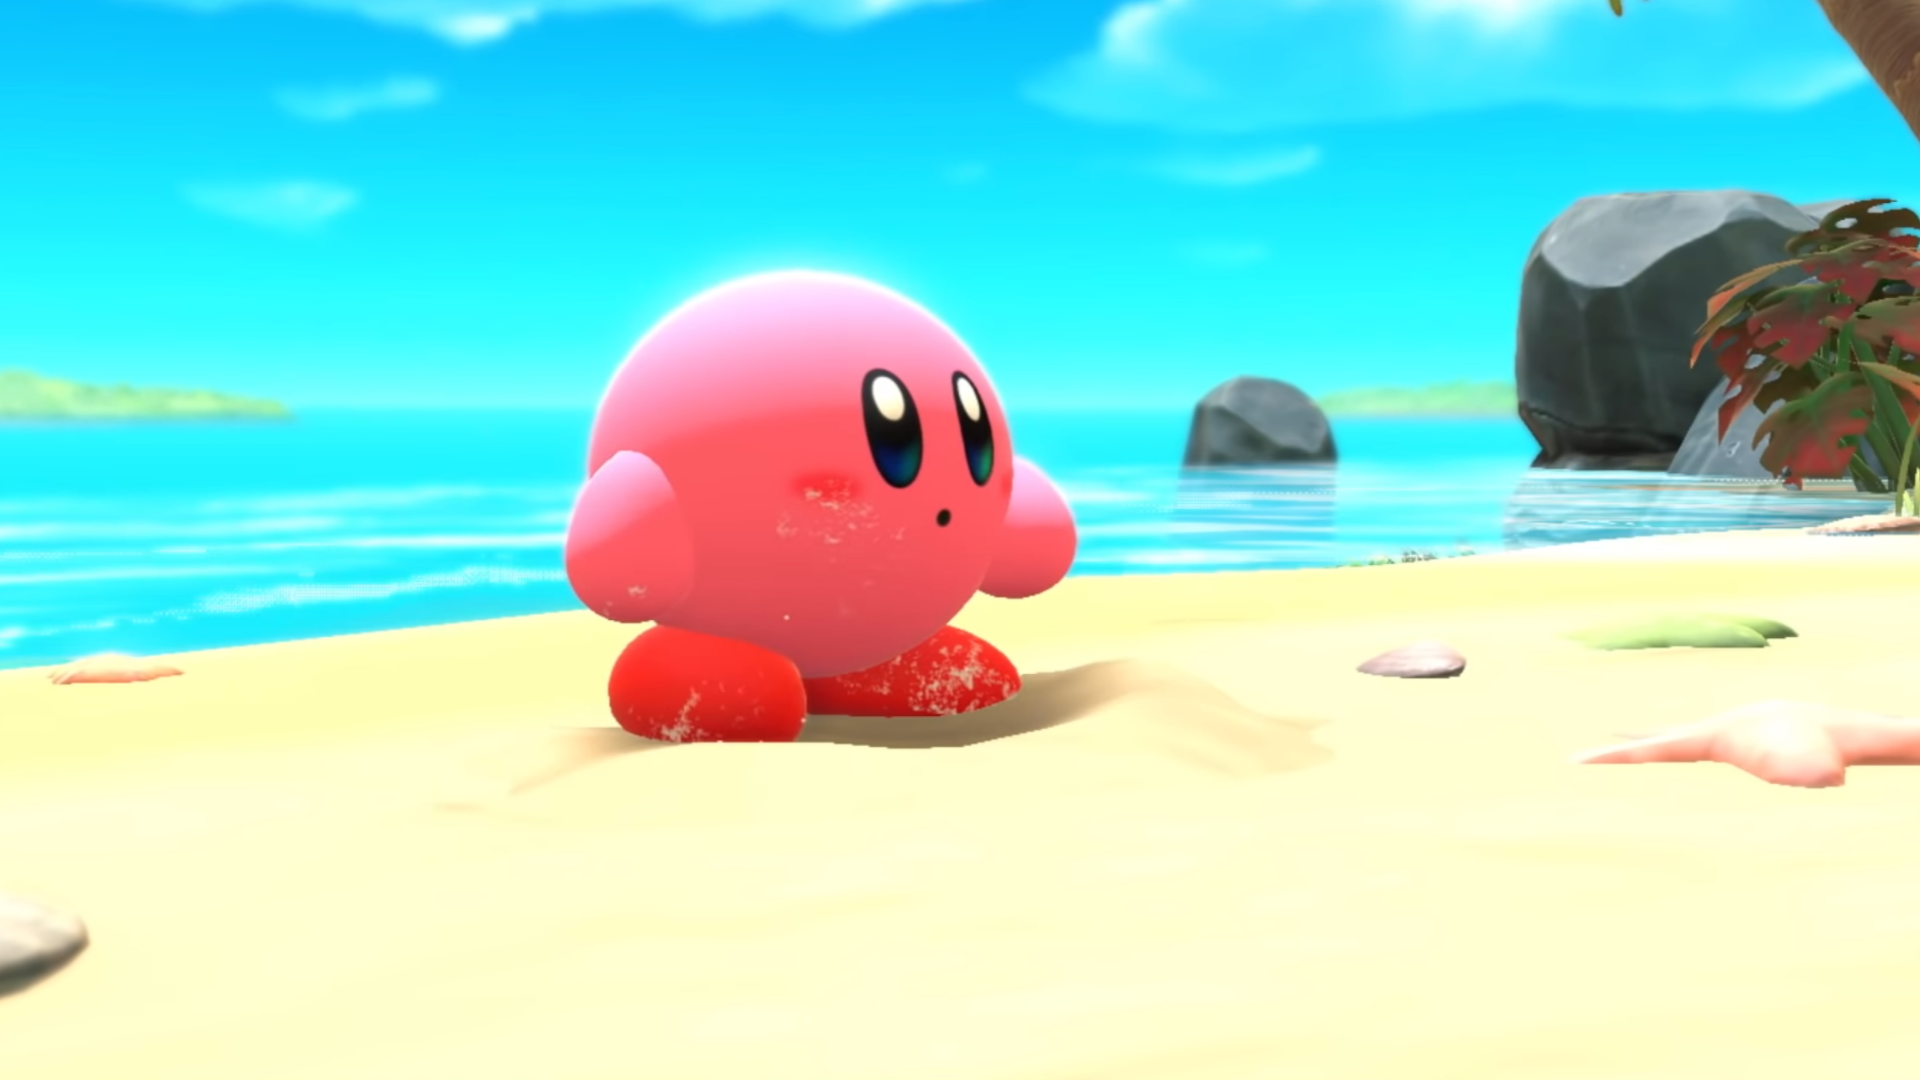 the-new-kirby-switch-game-could-be-the-return-to-form-the-series-desperately-needs